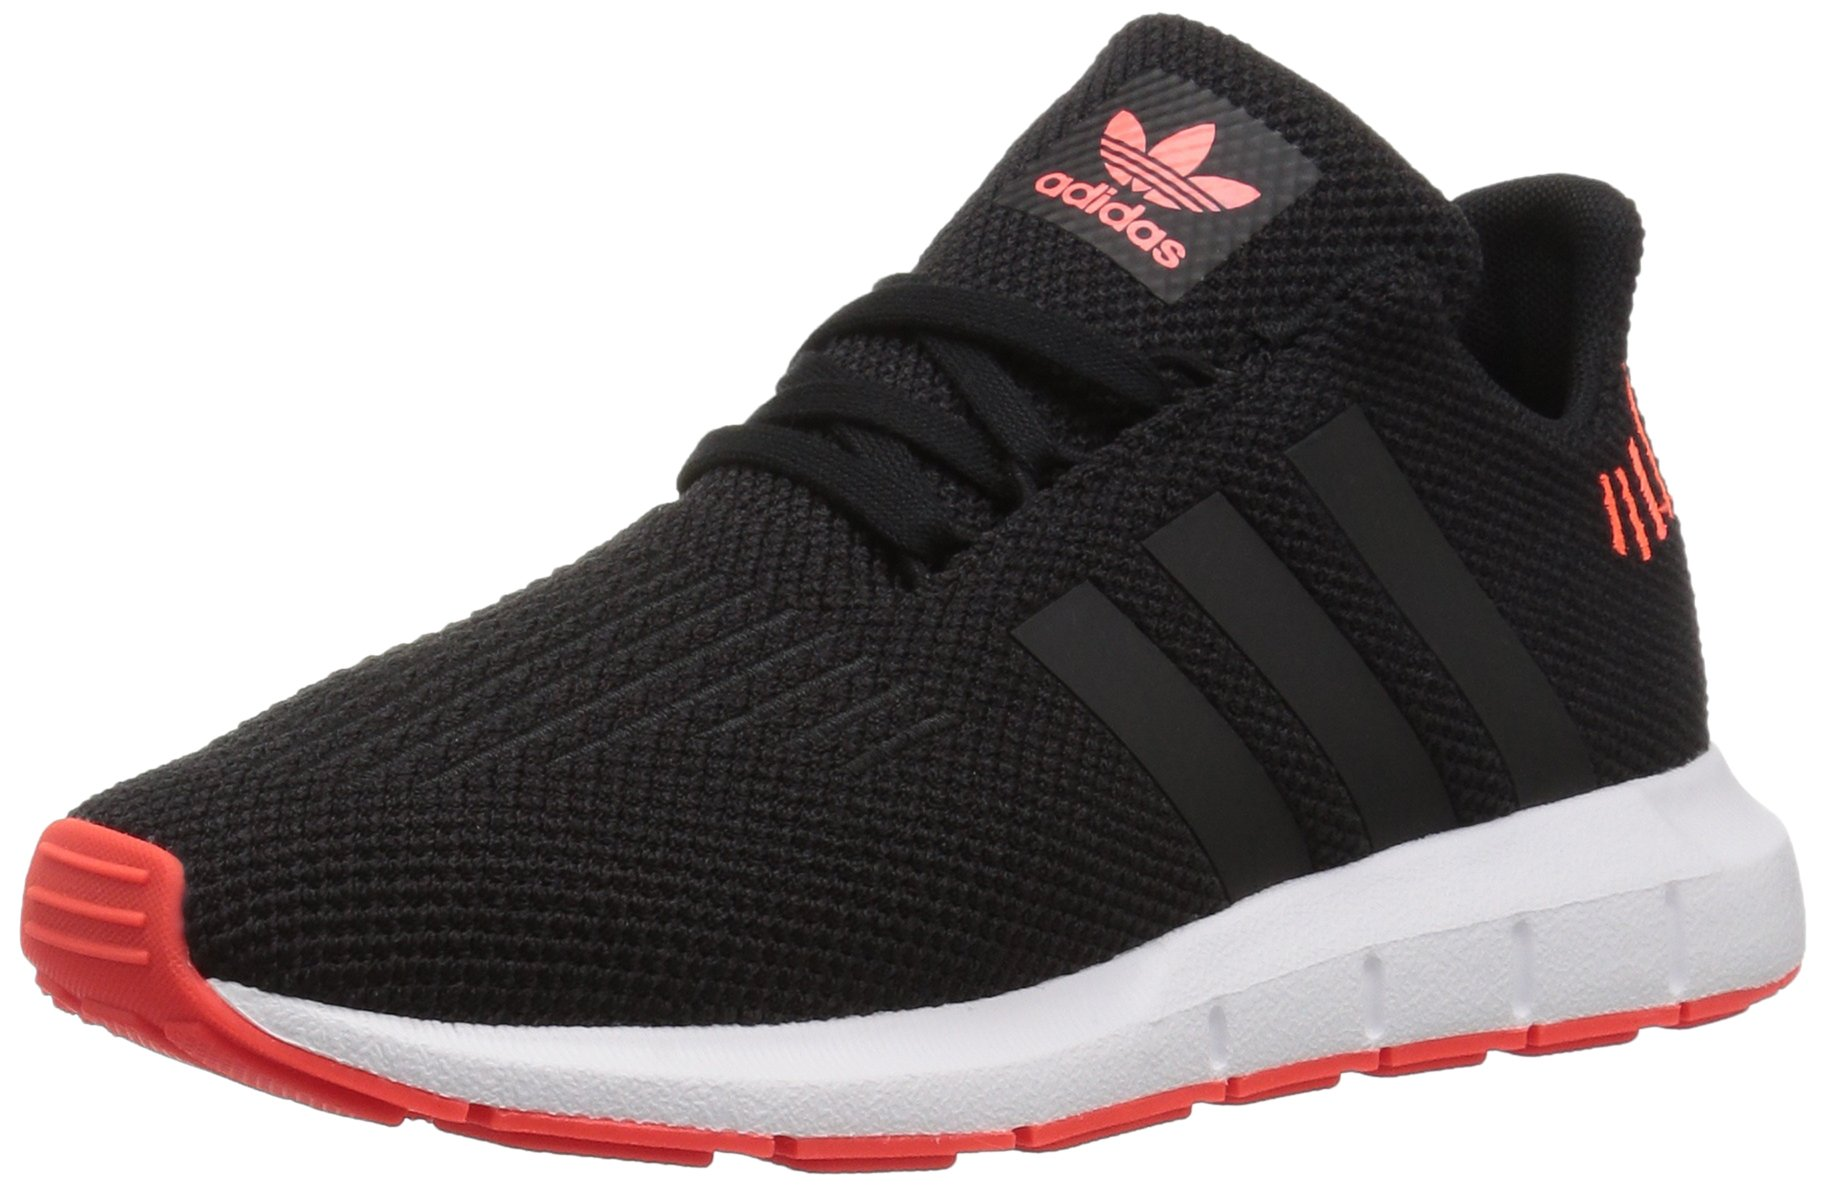 adidas Originals Unisex-Kids Swift Running Shoe, Black/Black/Solar Red, 4 M US Big Kid